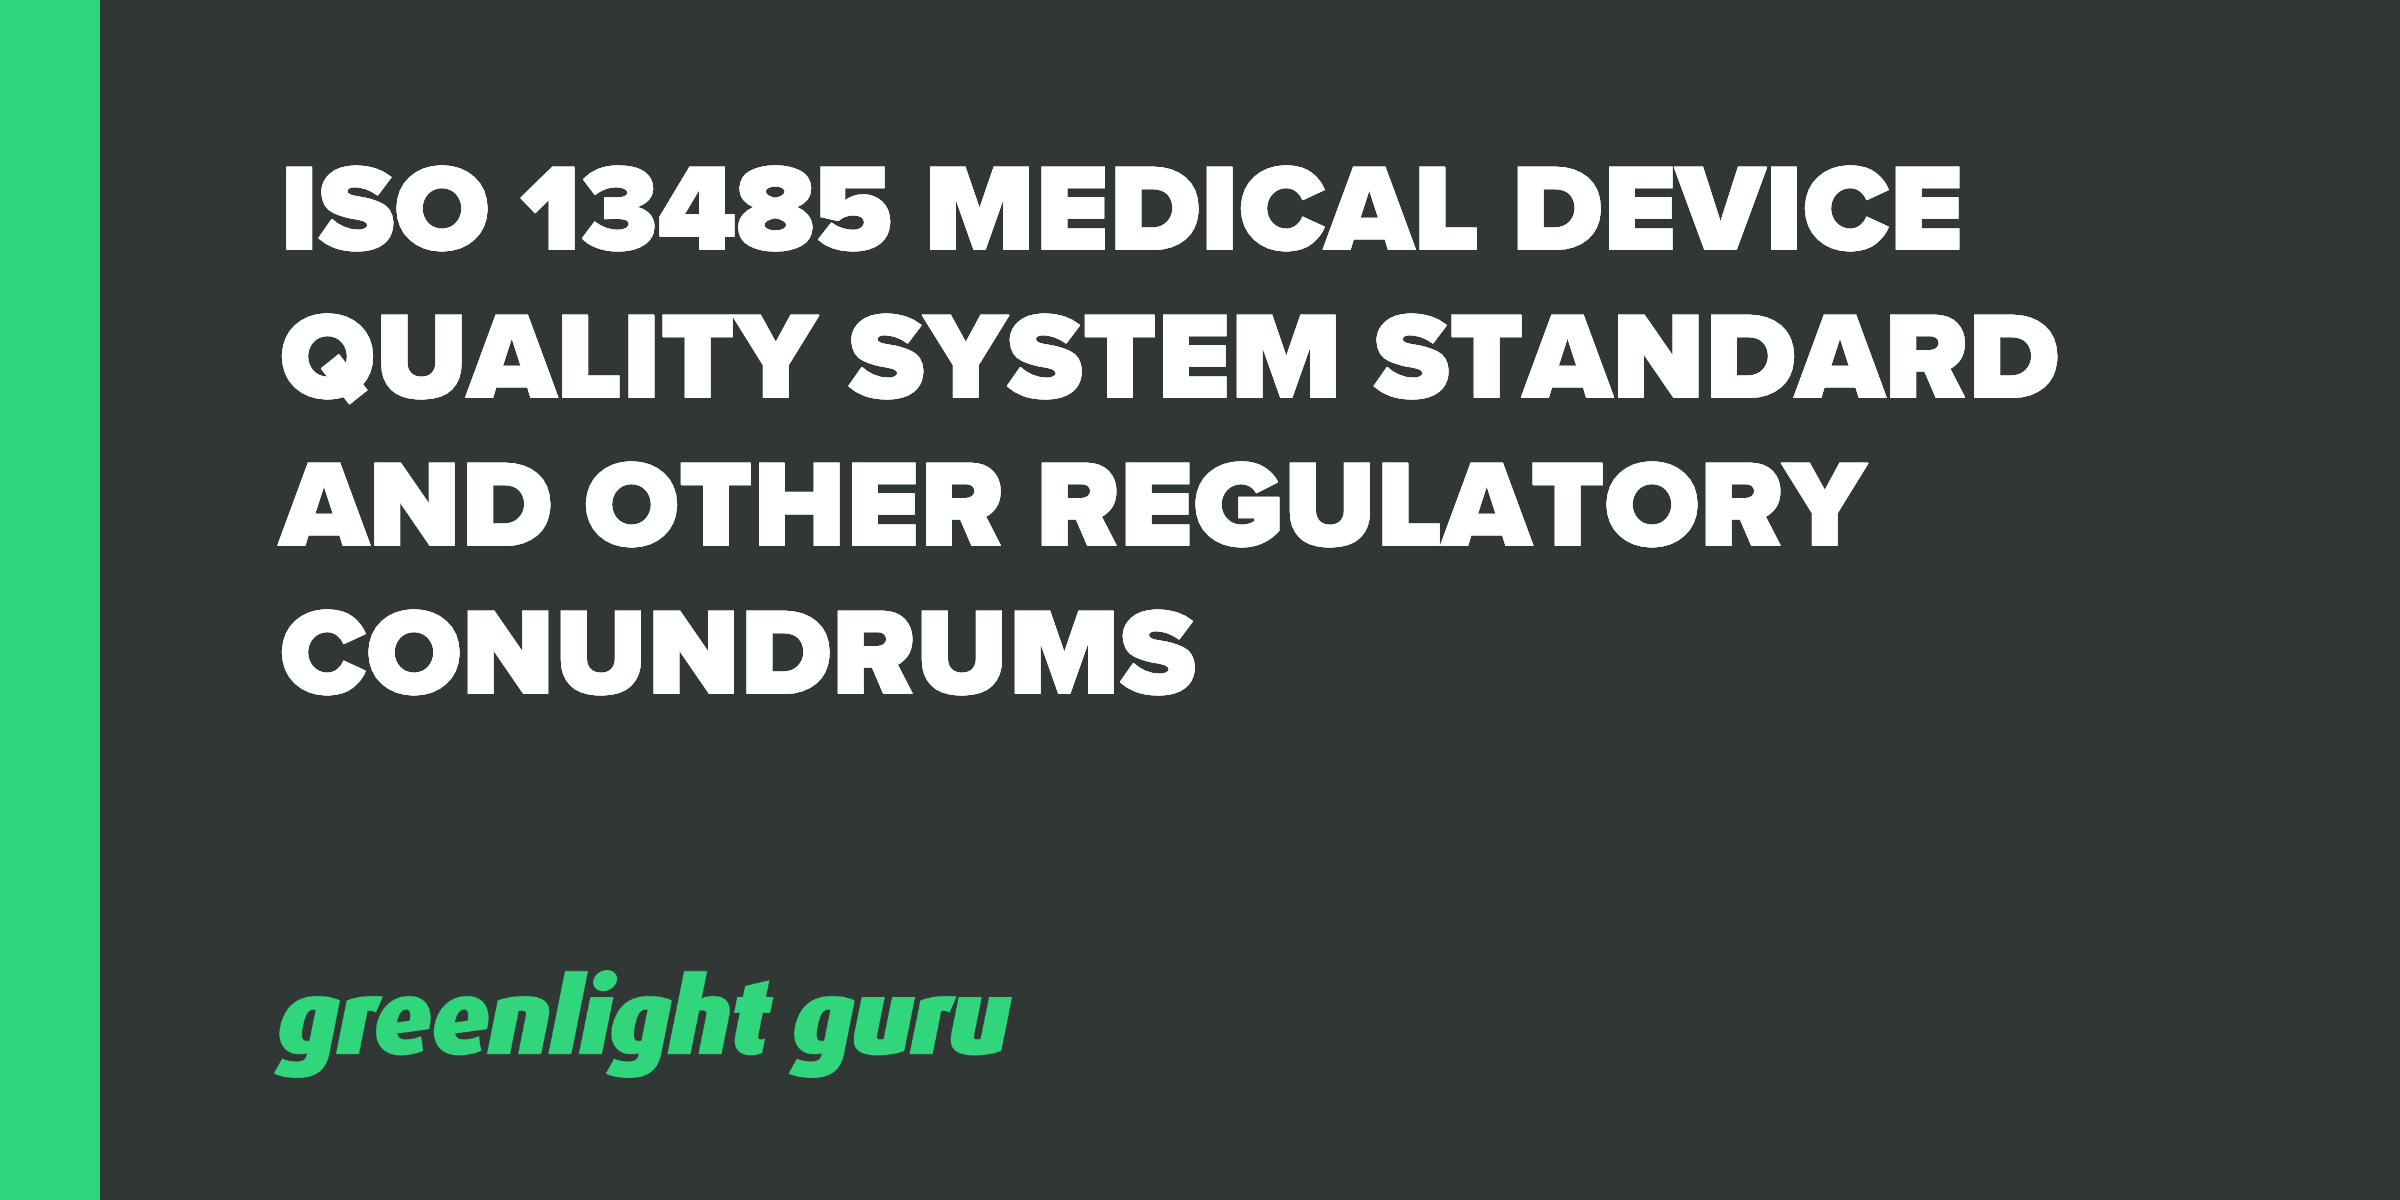 ISO 13485 Medical Device Quality System Standard And Other Regulatory Conundrums